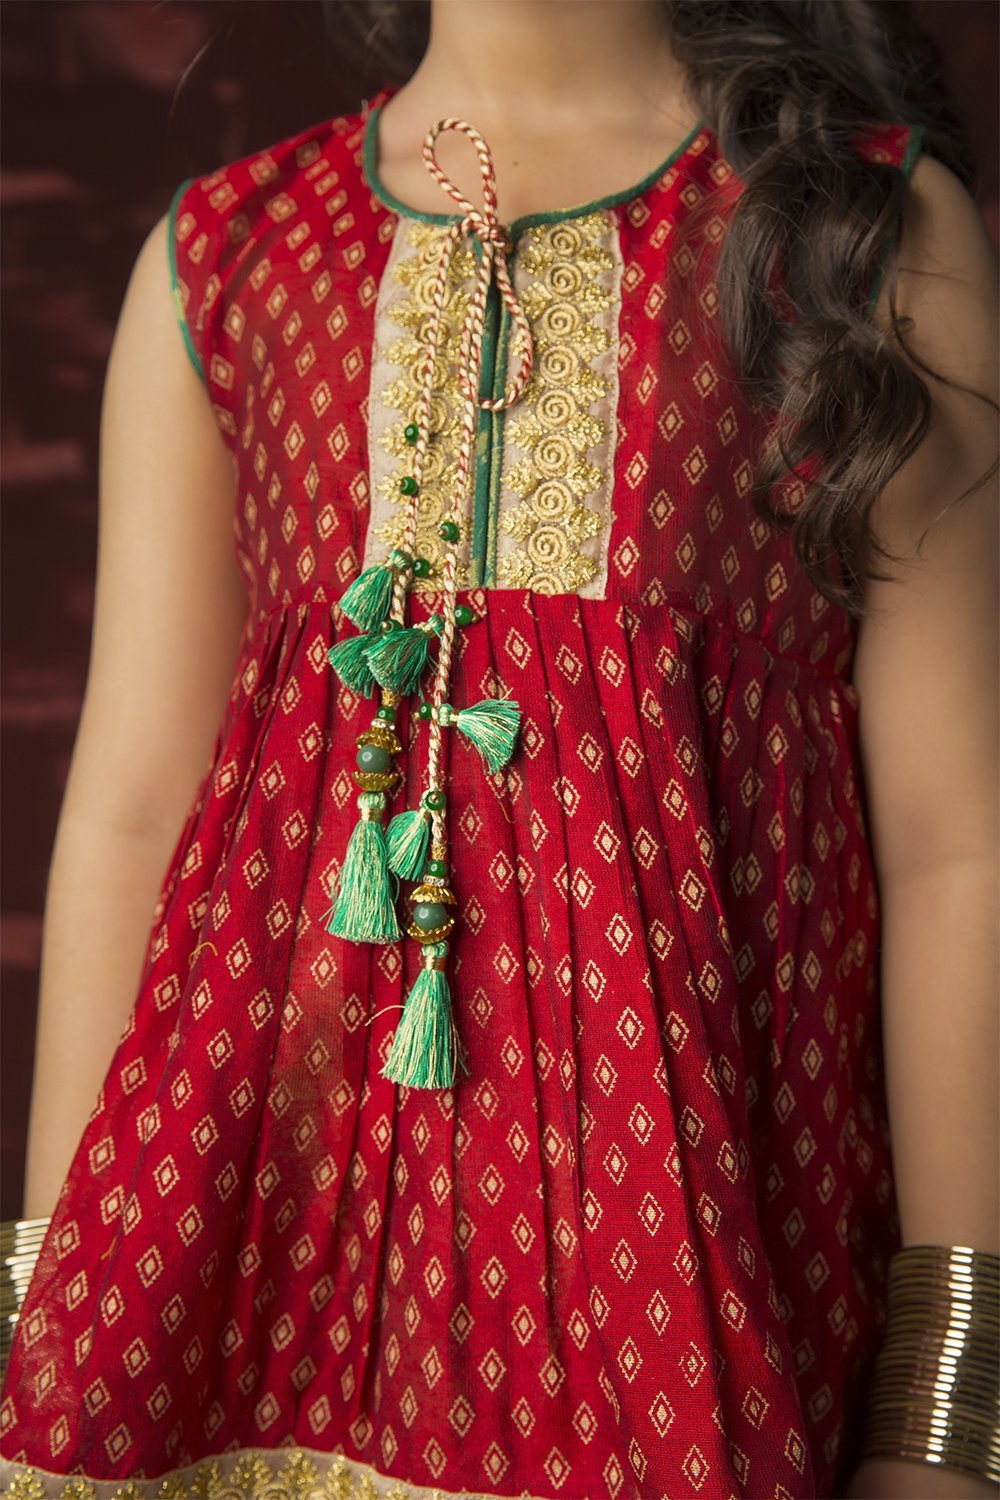 Kids Formal 3 Piece Suit | Banarsi Khaddi Net | Maroon & Gold | KDD-01303